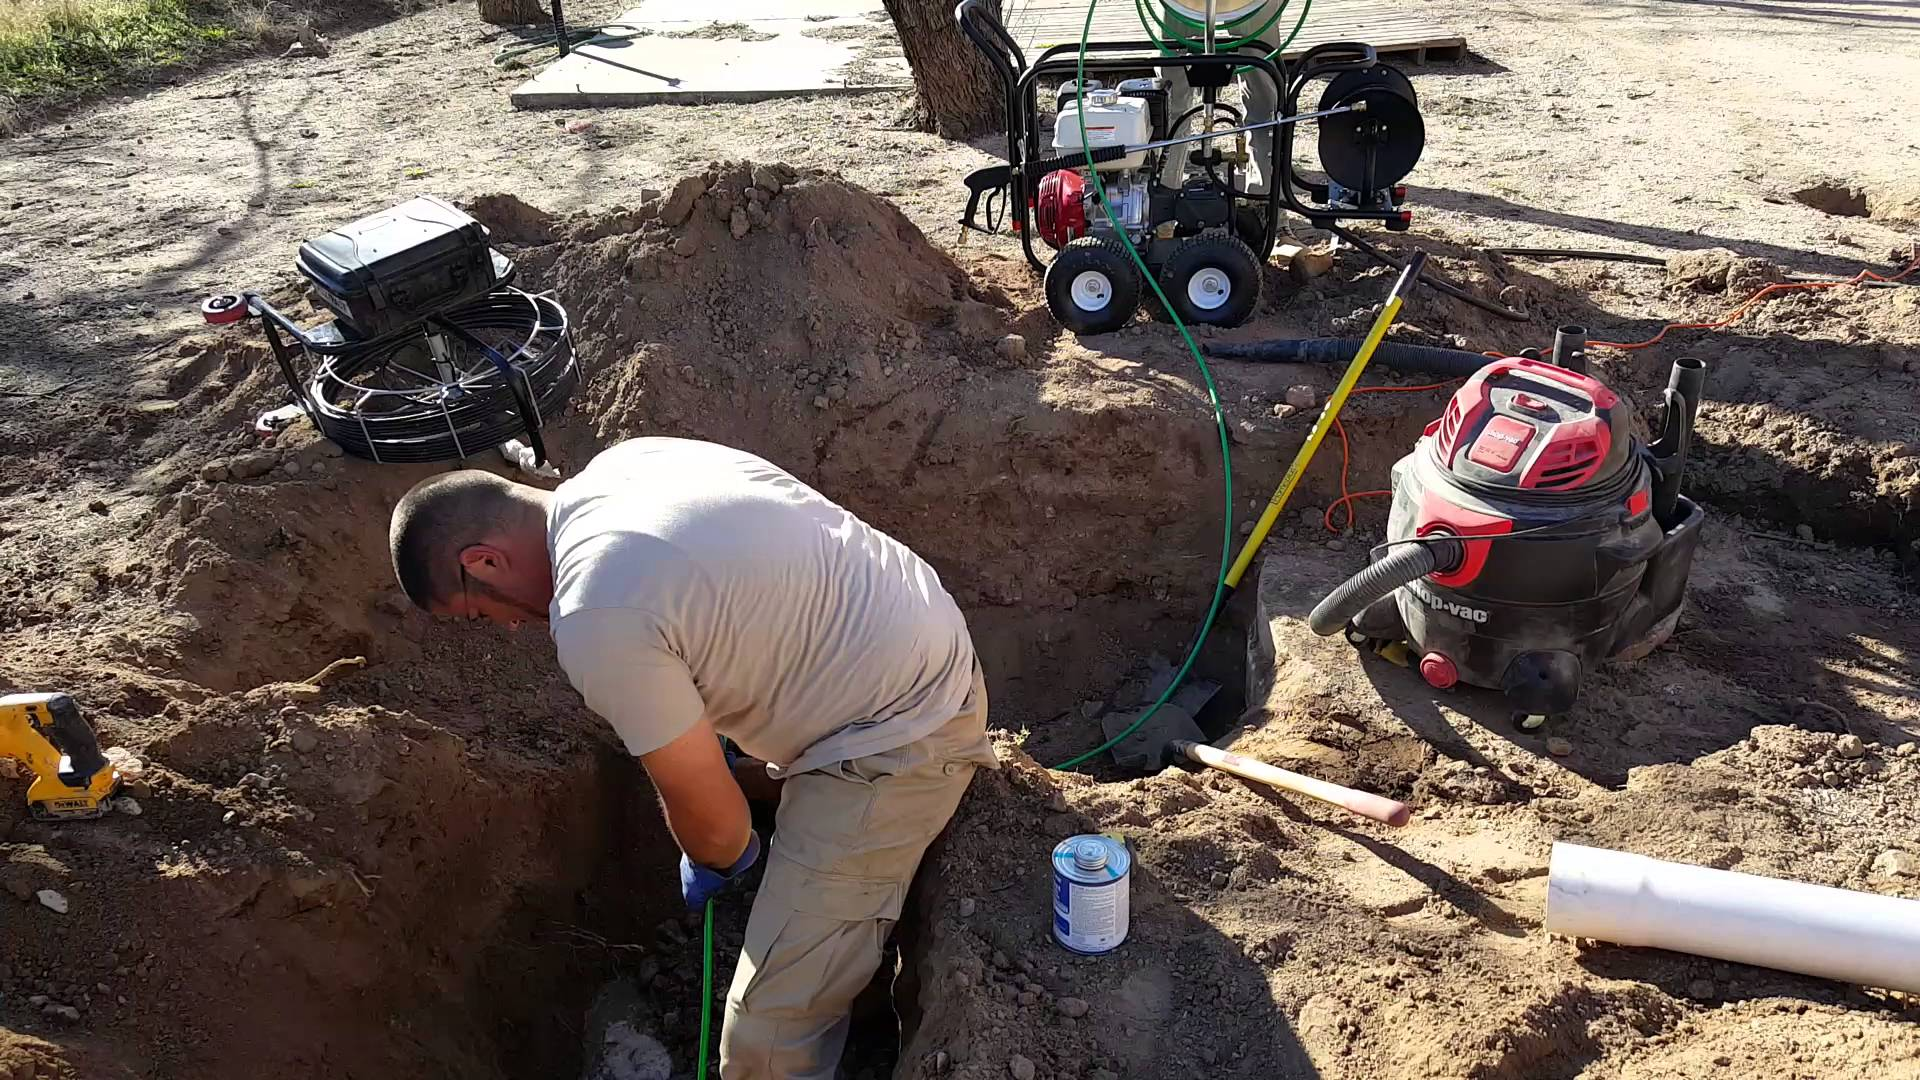 Padre island-Corpus Christi TX Septic Tank Pumping, Installation, & Repairs-We offer Septic Service & Repairs, Septic Tank Installations, Septic Tank Cleaning, Commercial, Septic System, Drain Cleaning, Line Snaking, Portable Toilet, Grease Trap Pumping & Cleaning, Septic Tank Pumping, Sewage Pump, Sewer Line Repair, Septic Tank Replacement, Septic Maintenance, Sewer Line Replacement, Porta Potty Rentals, and more.